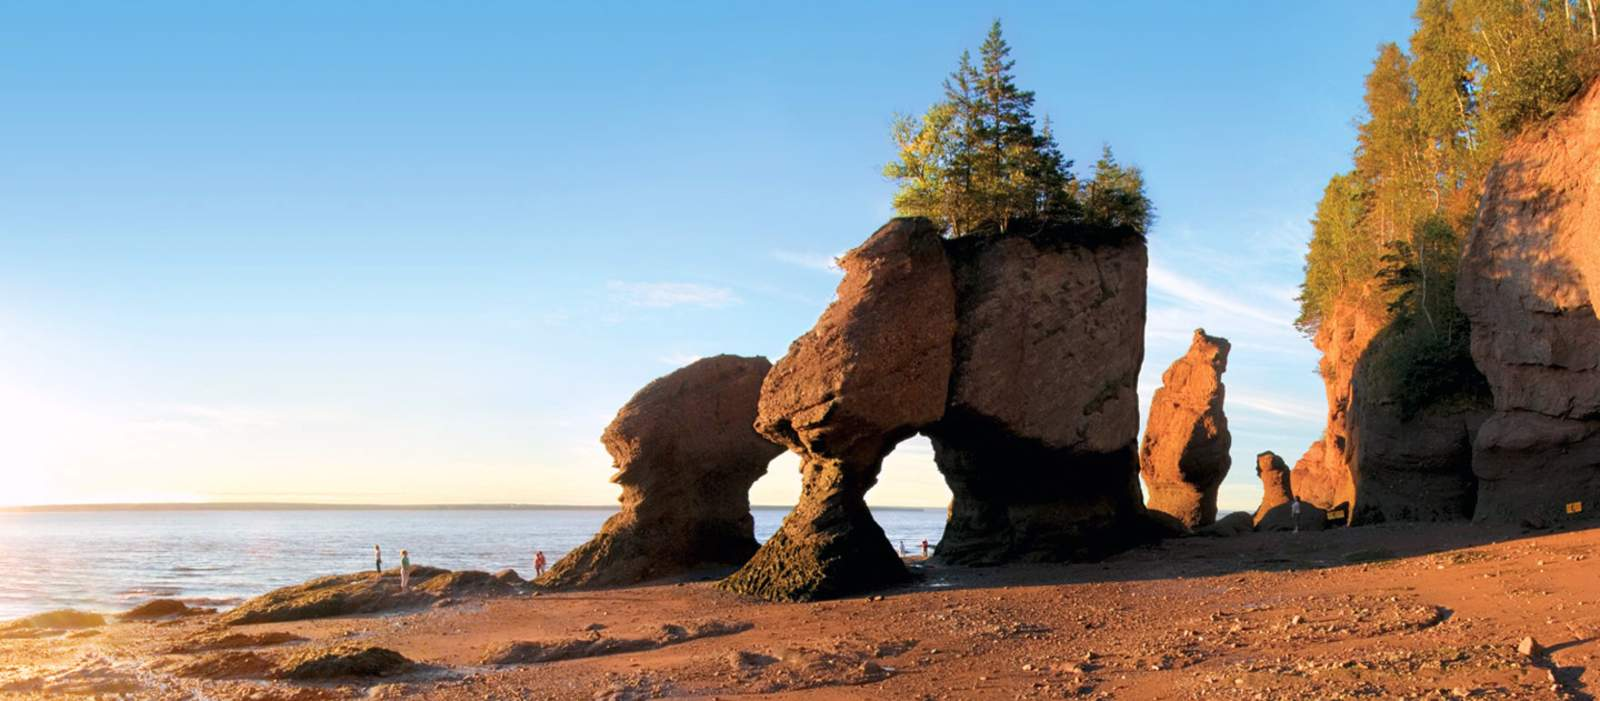 Hopewell Rocks in der Bay of Fundy bei Ebbe